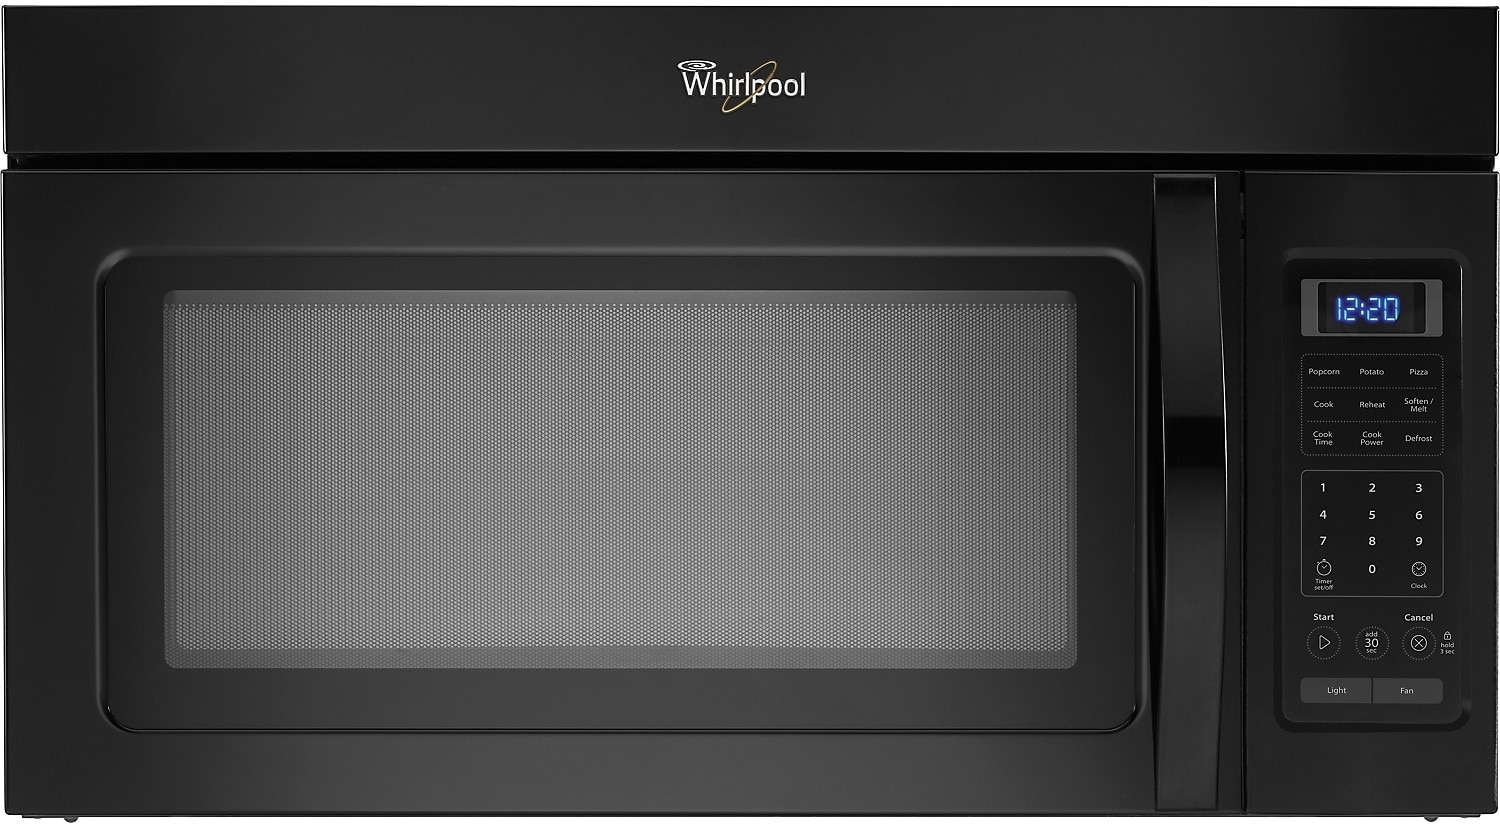 Cooking Products - Whirlpool 1.7 Cu. Ft. Over-The-Range Microwave - Black